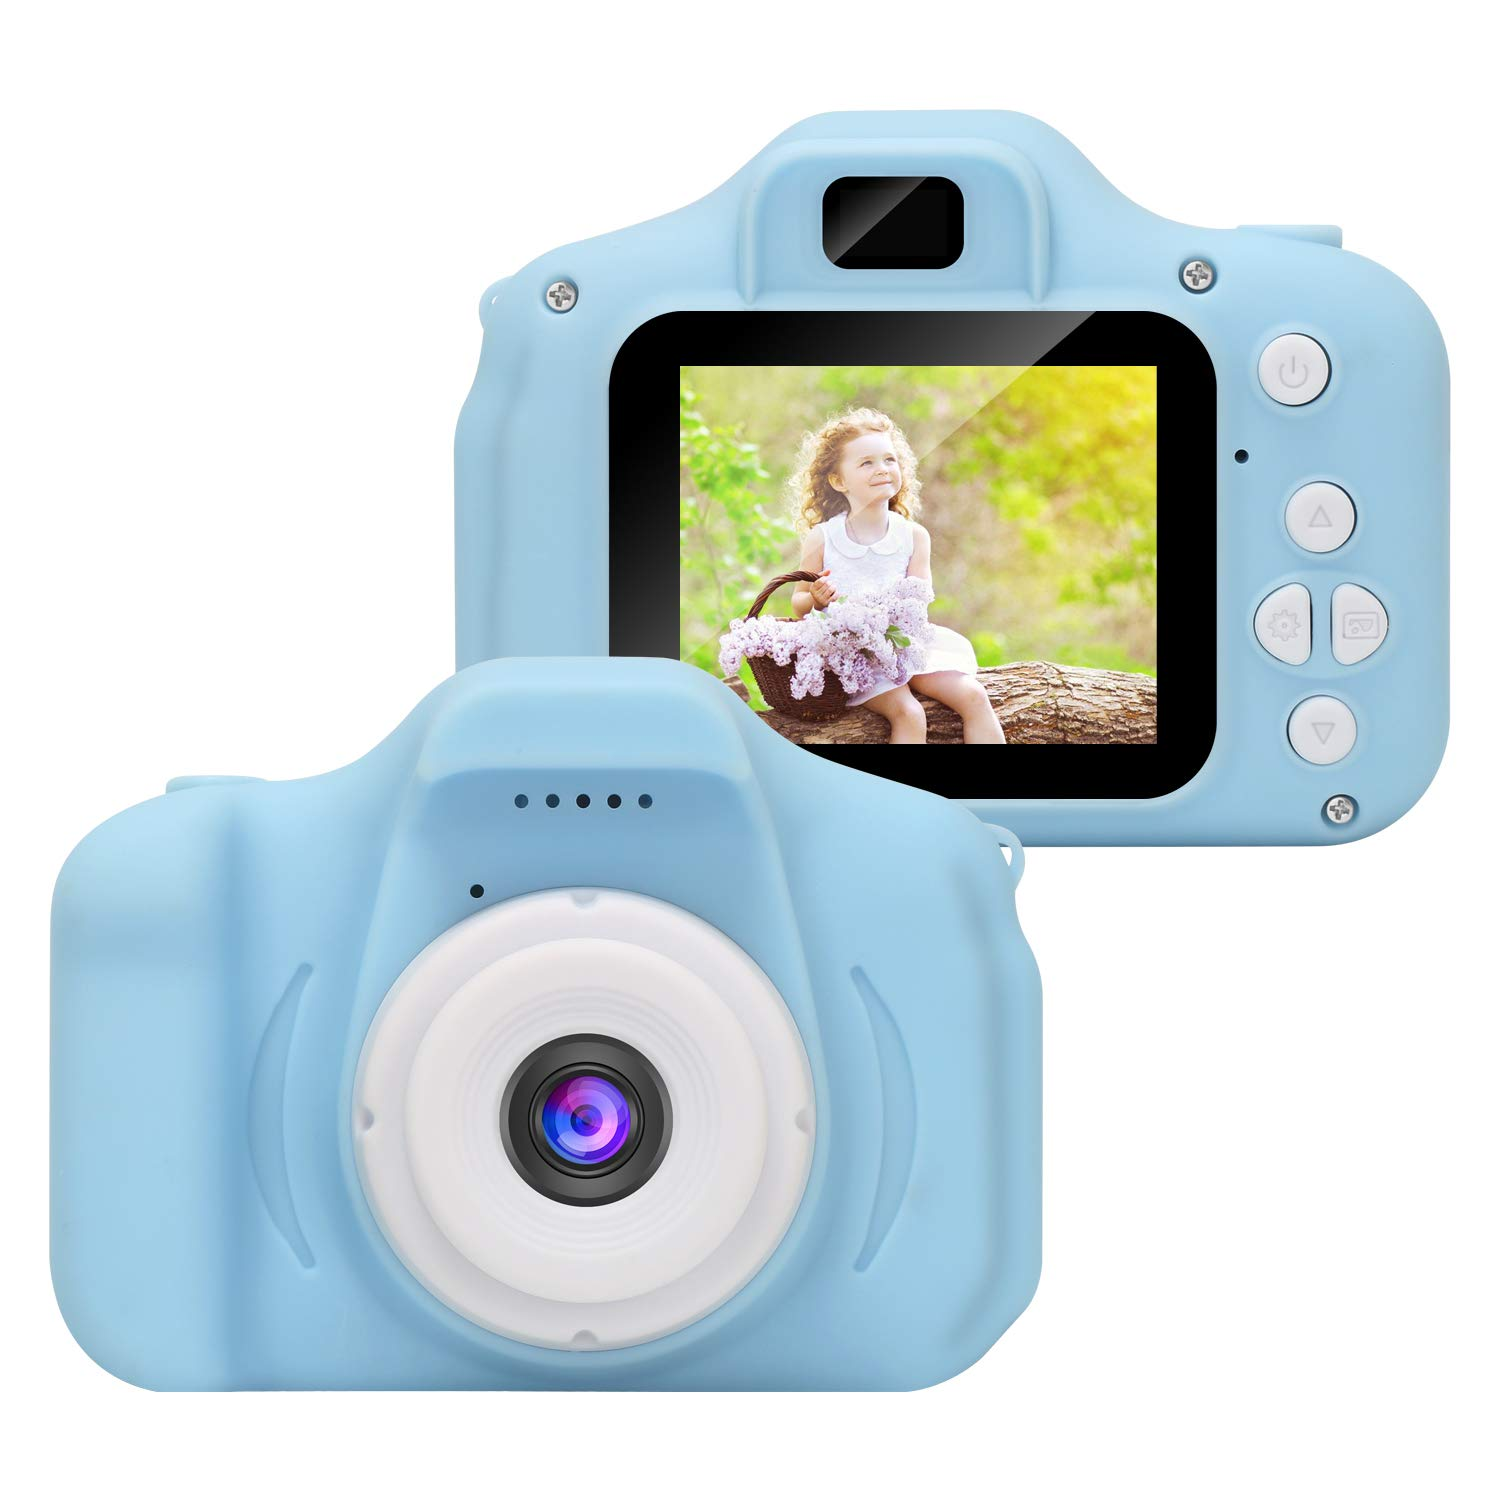 DDGG Kids Digital Camera Toy Camera HD Kids Video Cameras Shockproof Cameras with Soft Silicone Shell Gift for 4-10 Years Old Girls Boys Party Outdoor Play (16G SD Card Included) by DDGG (Image #2)